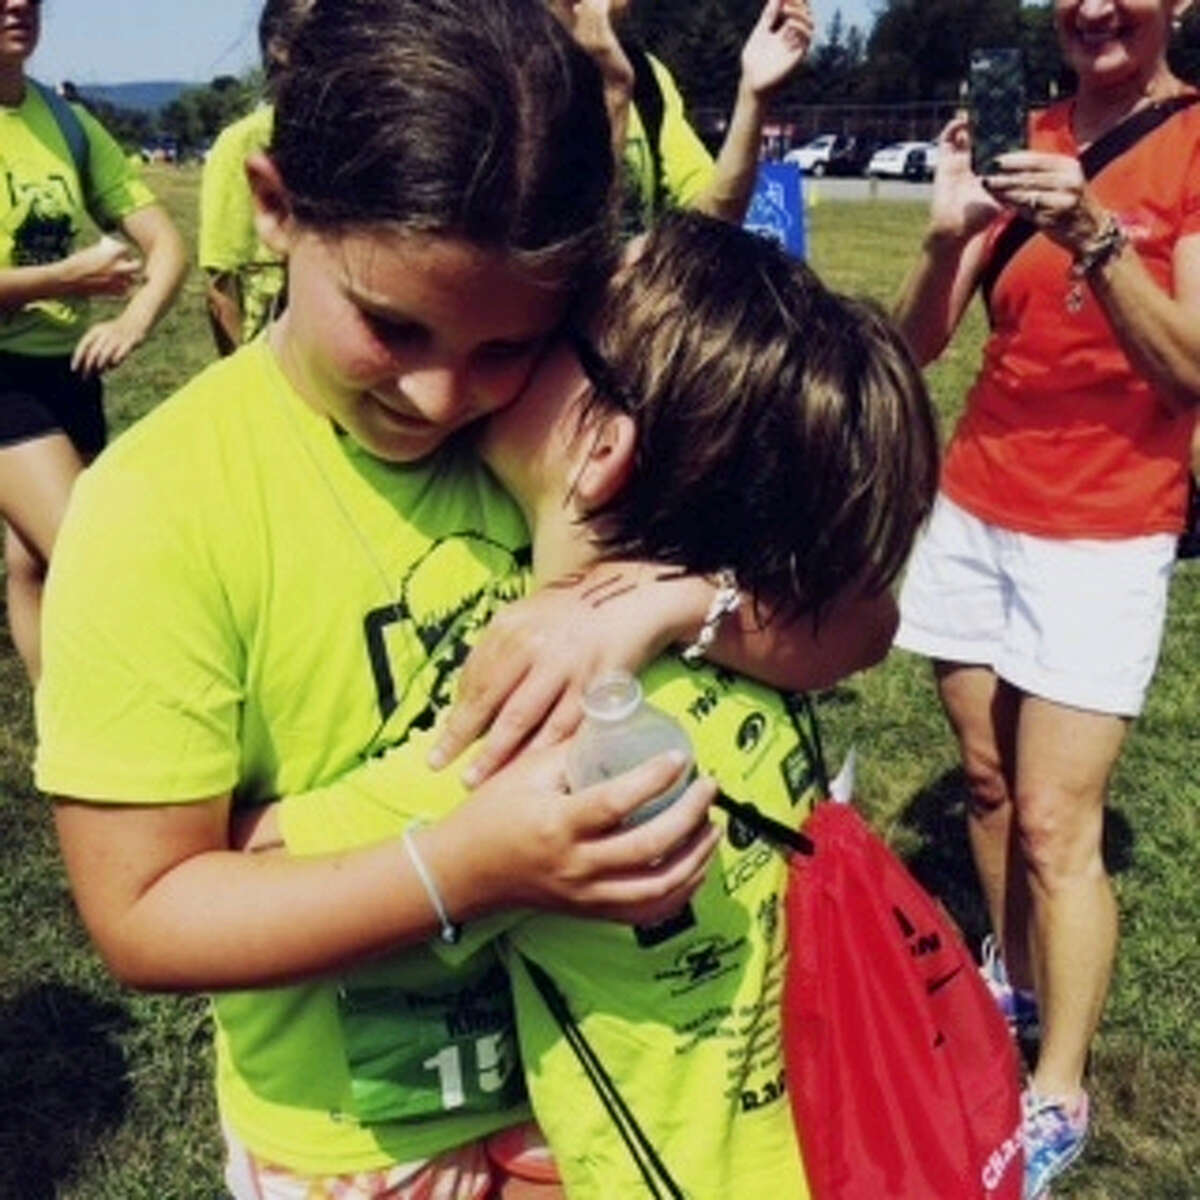 This undated photo provided by Heather Theriault shows Lily Rose Theriault, left and her friend Avary Gomez at the Race4Chase finish line. A triathlon program for children that was created by the family of a Sandy Hook shooting victim is getting some help from another Connecticut charity as it expands across the state and beyond. Bikes for Kids is providing 200 bicycles to be used in the Race4Chase Youth Triathlon program, which was created by the parents of 7-year-old Chase Kowalski. Lily Rose, went through the camp last year after going through some problems with bullying and self-esteem at school. It changed her life, her mother Heather Theriault said.